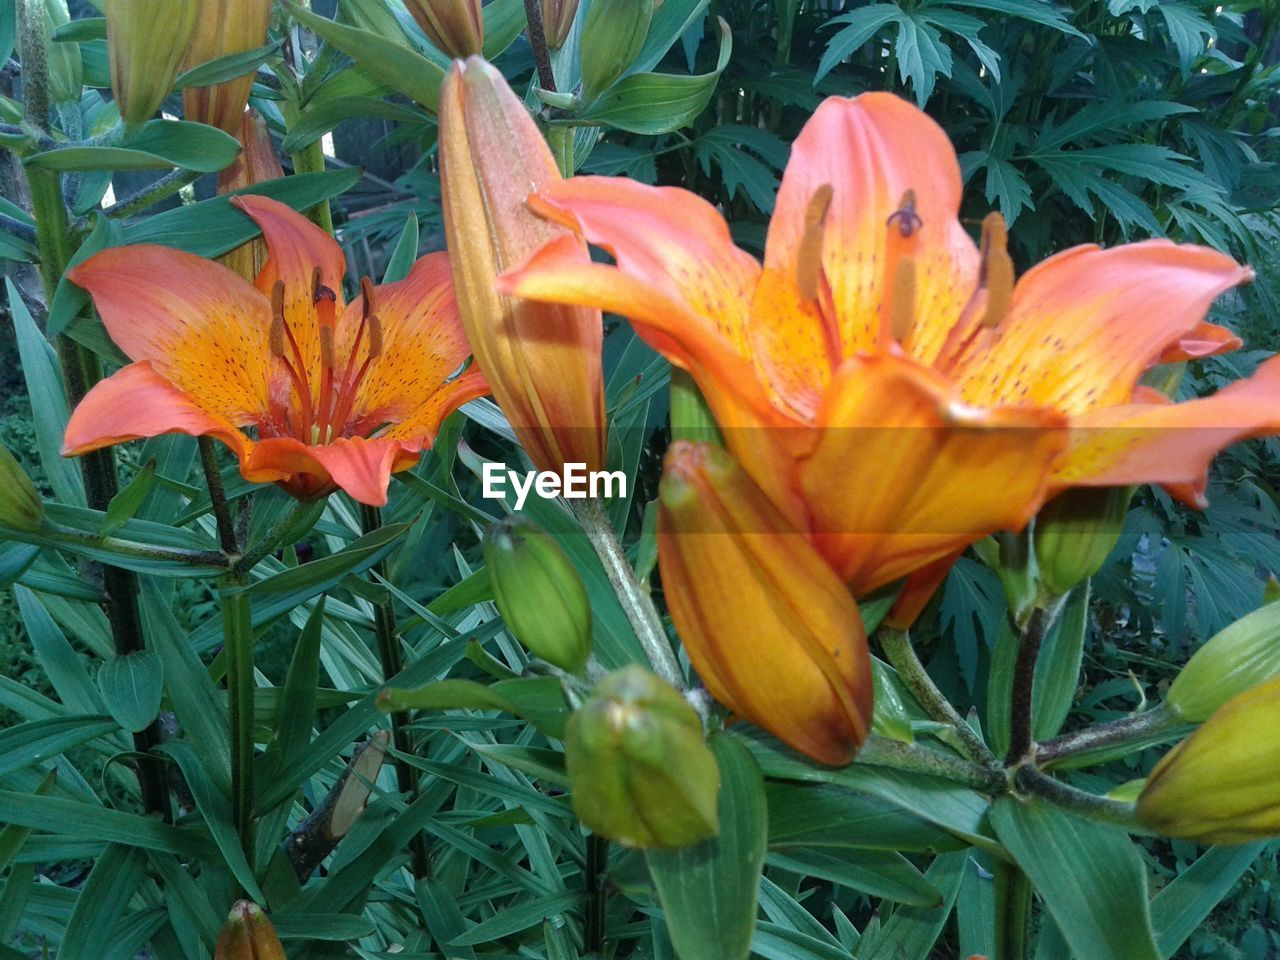 flower, petal, growth, freshness, beauty in nature, orange color, flower head, fragility, nature, day lily, blooming, plant, day, outdoors, no people, lily, close-up, leaf, springtime